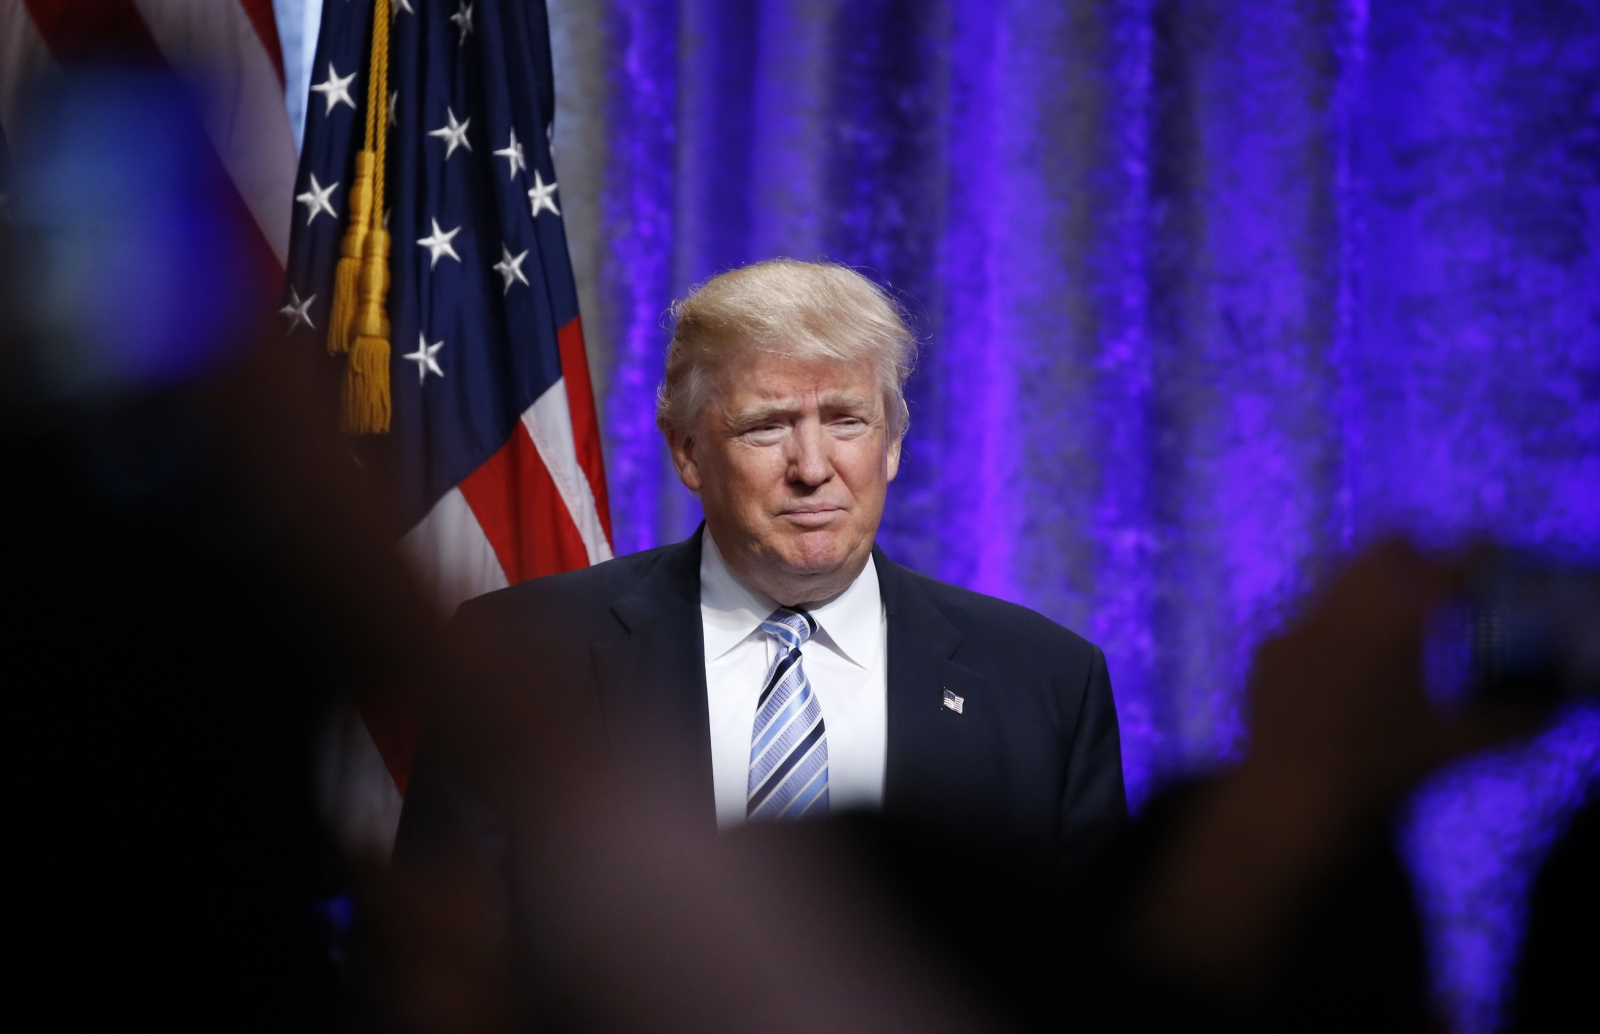 New anti-Trump website launched is the one-stop shop for all his controversial comments